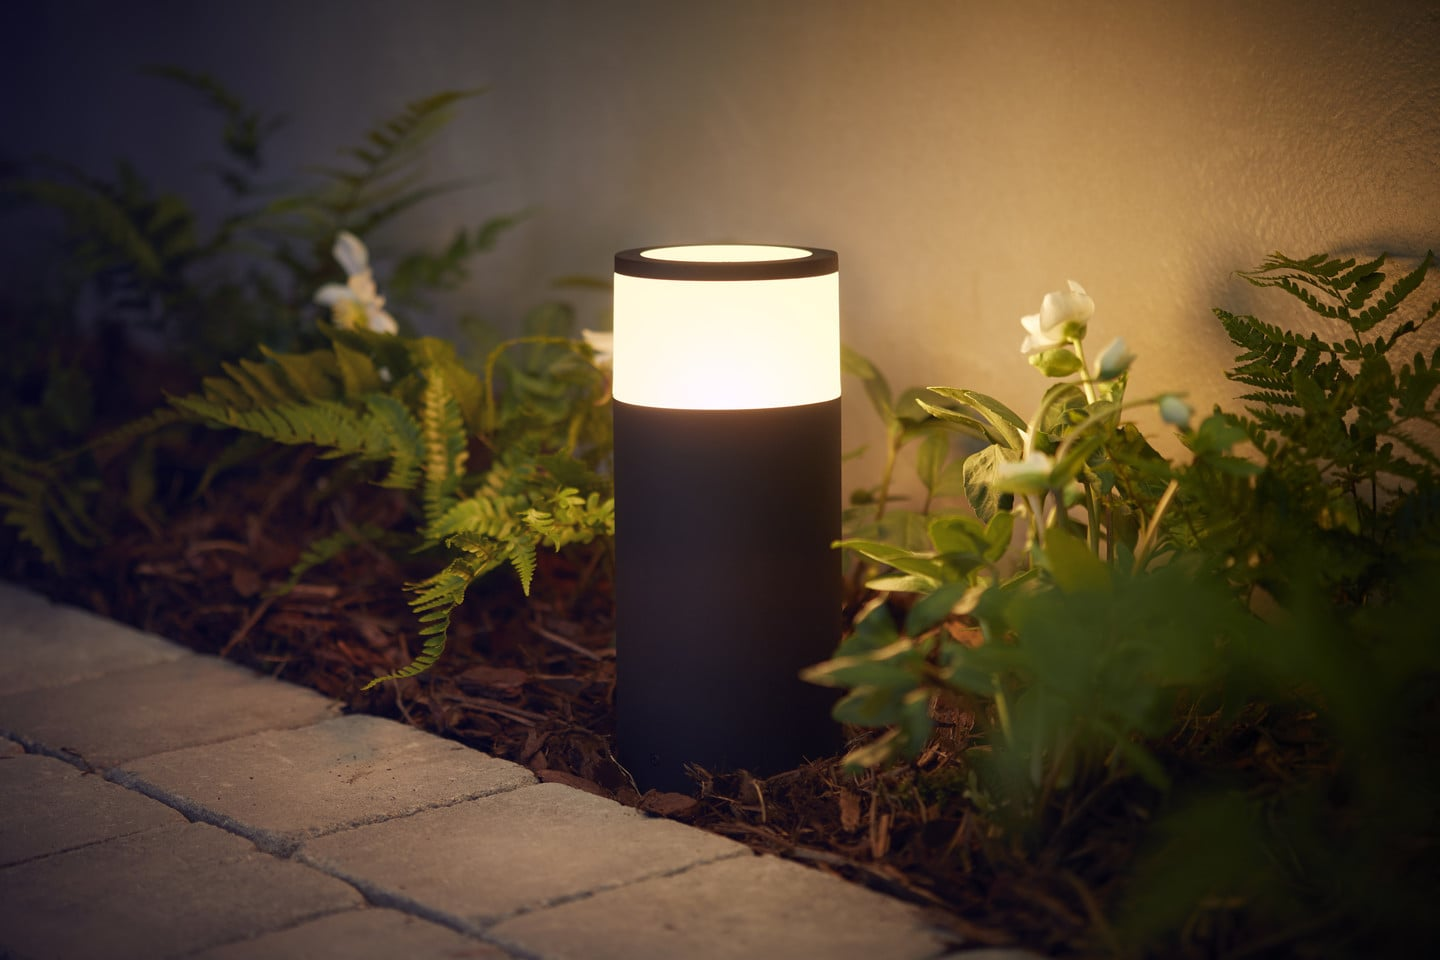 Philips Hue outdoor range lights up just in time for summer